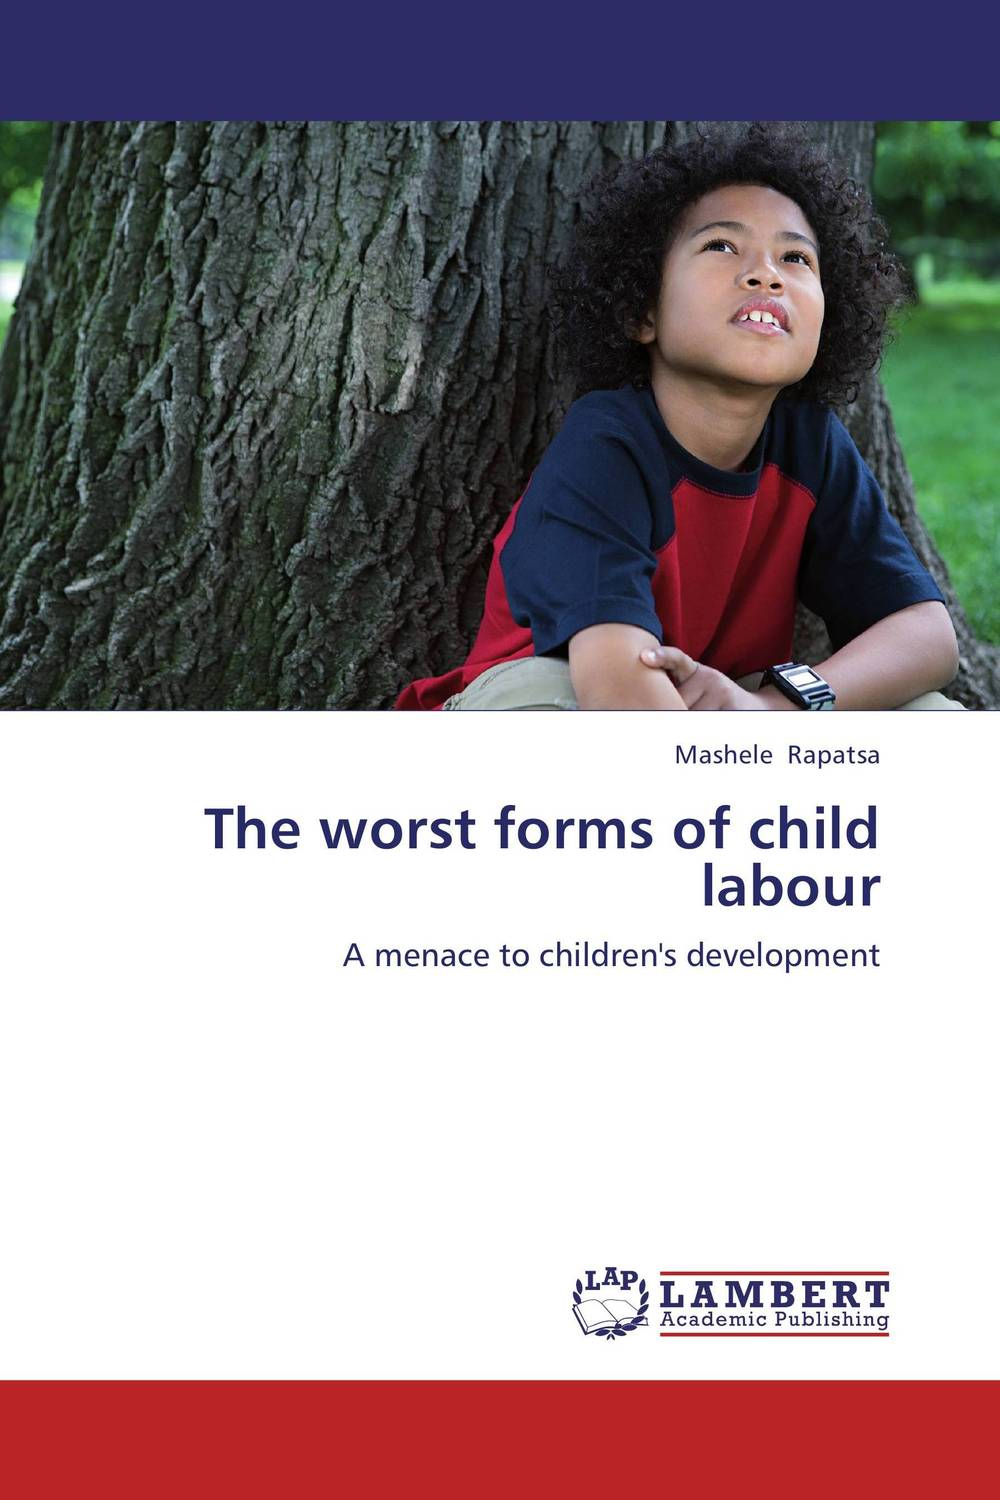 The worst forms of child labour victims stories and the advancement of human rights